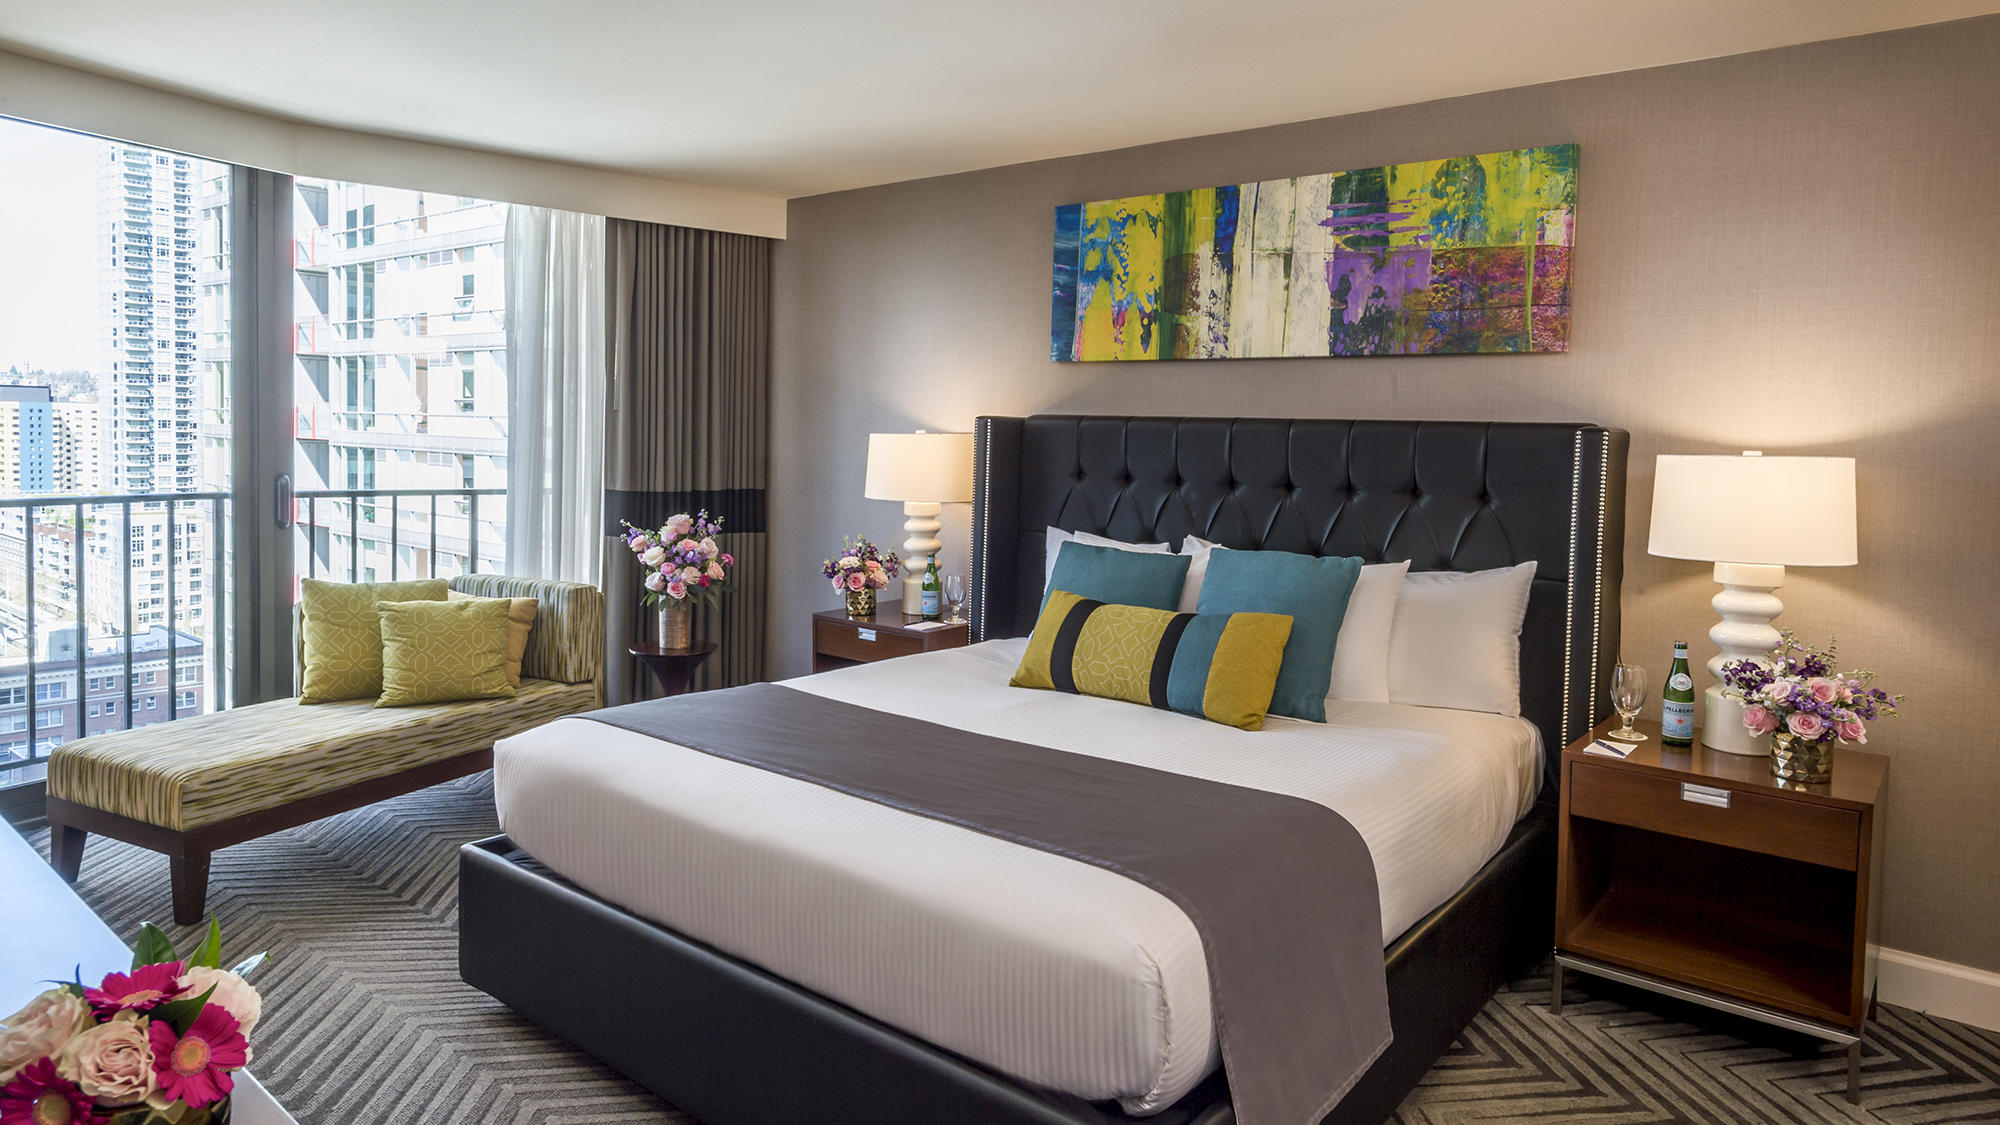 Queen Anne Suite offer details